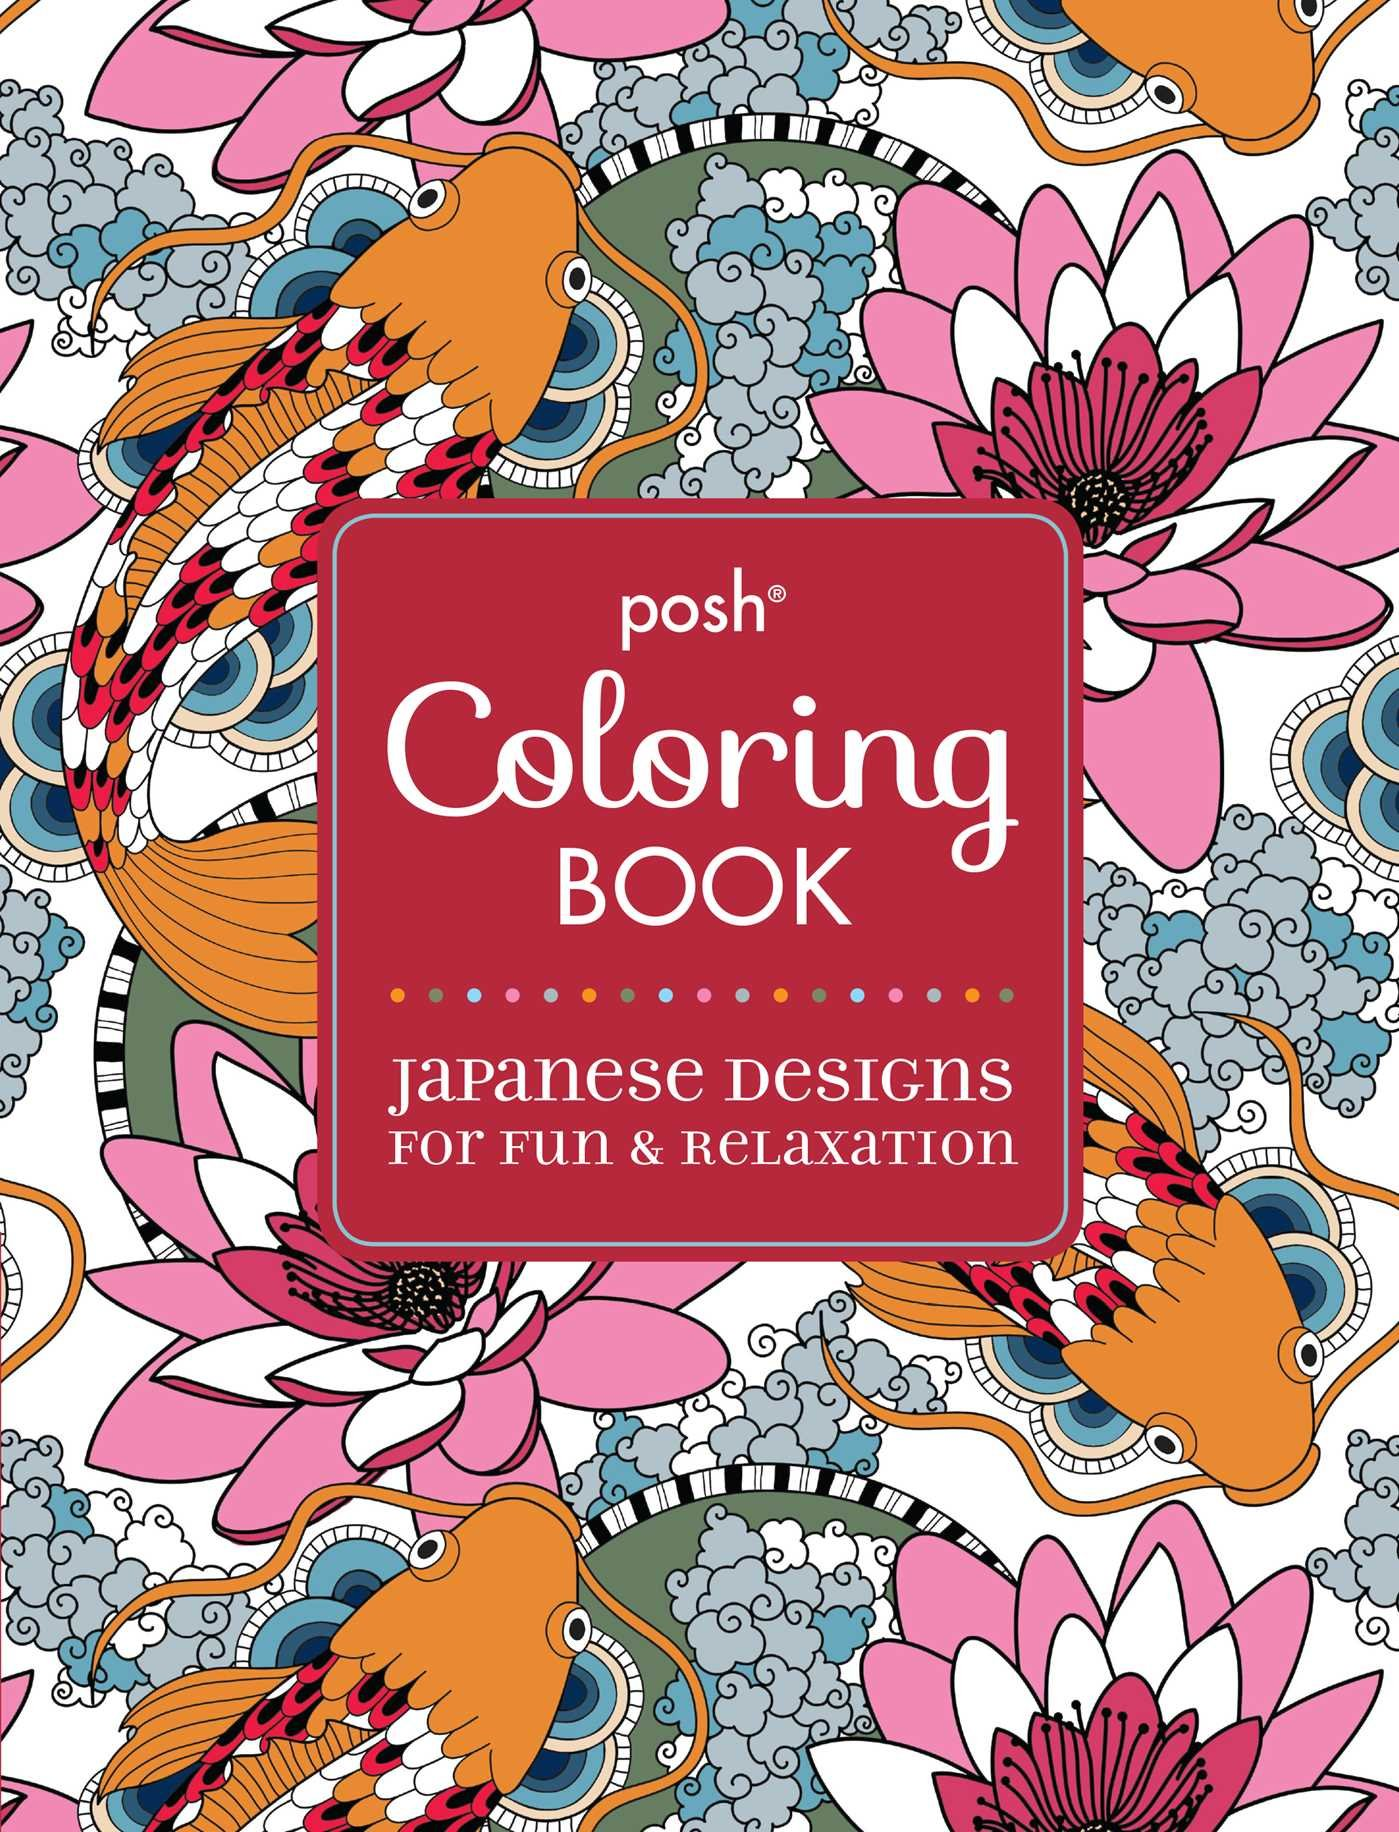 Posh Adult Coloring Book Japanese Designs For Fun Relaxation Andrews McMeel Publishing 9781449471996 Books